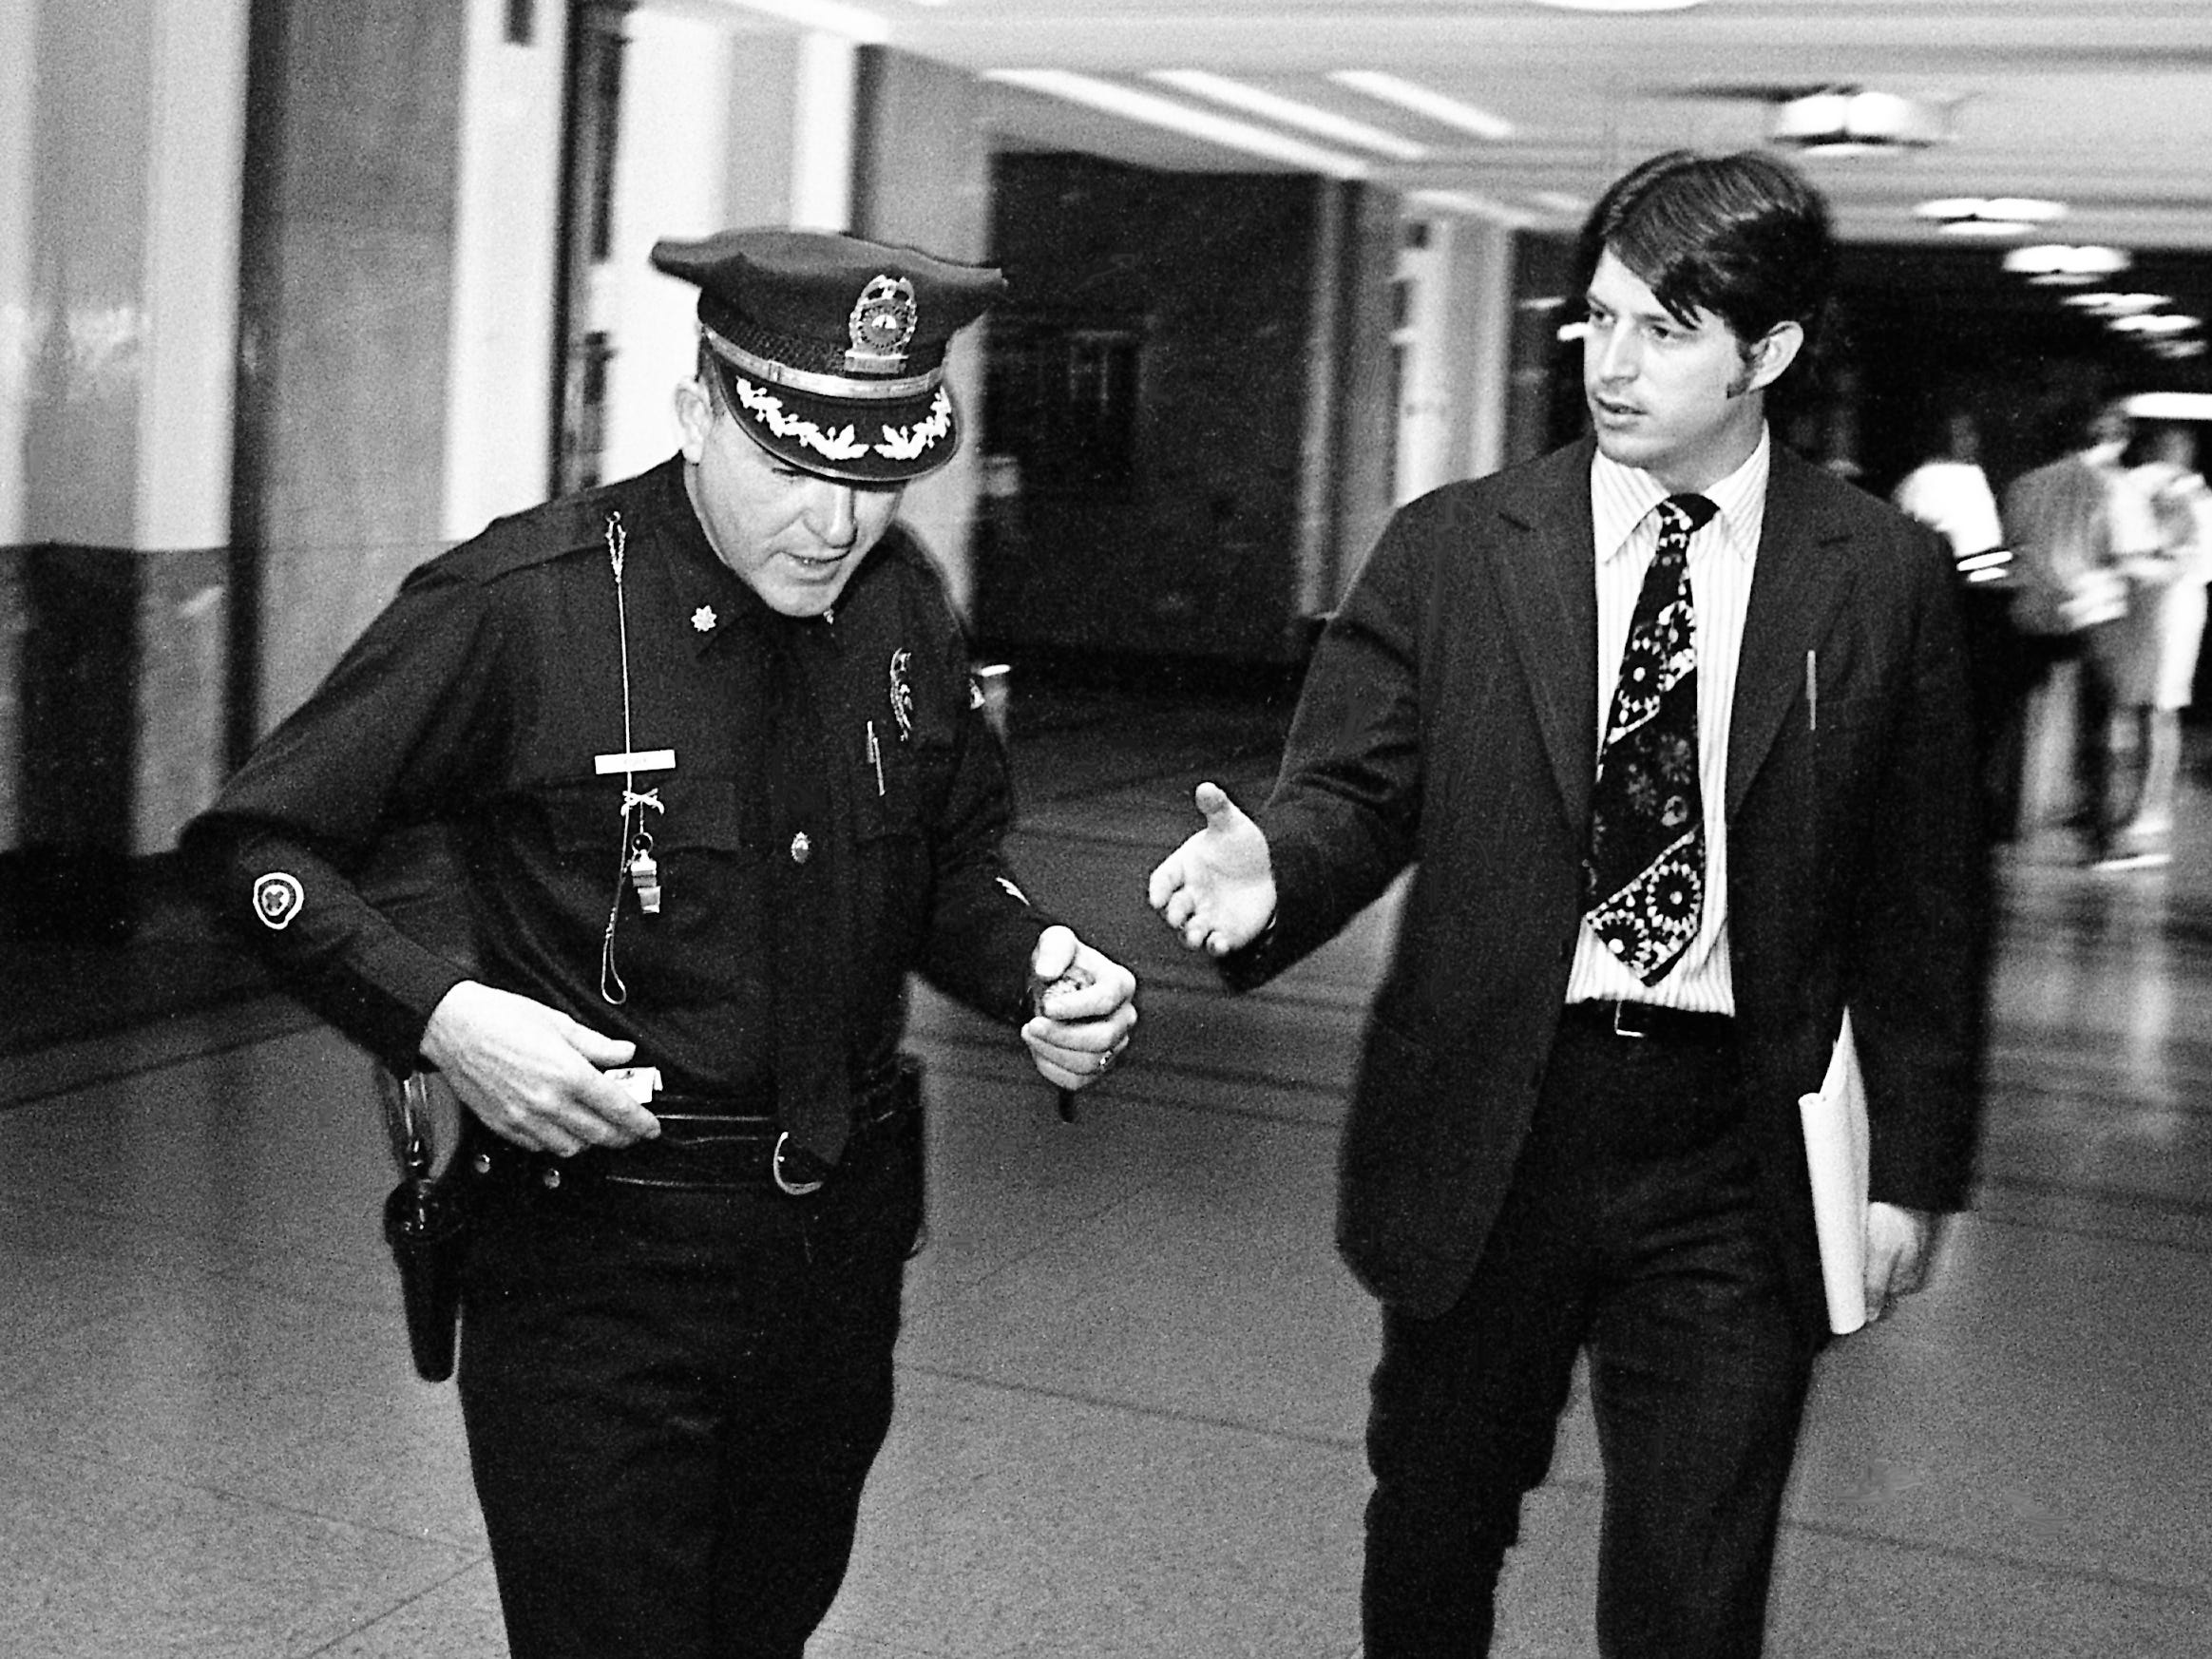 Metro police Maj. James A. York, left, declines to answer questions from Tennessean reporter Al Gore Jr. as he leaves the Davidson County grand jury room at the Metro Courthouse on Oct. 12, 1973. York was subpoenaed to testify about his knowledge of the department's internal investigation of alleged criminal activity by Metro police officers.